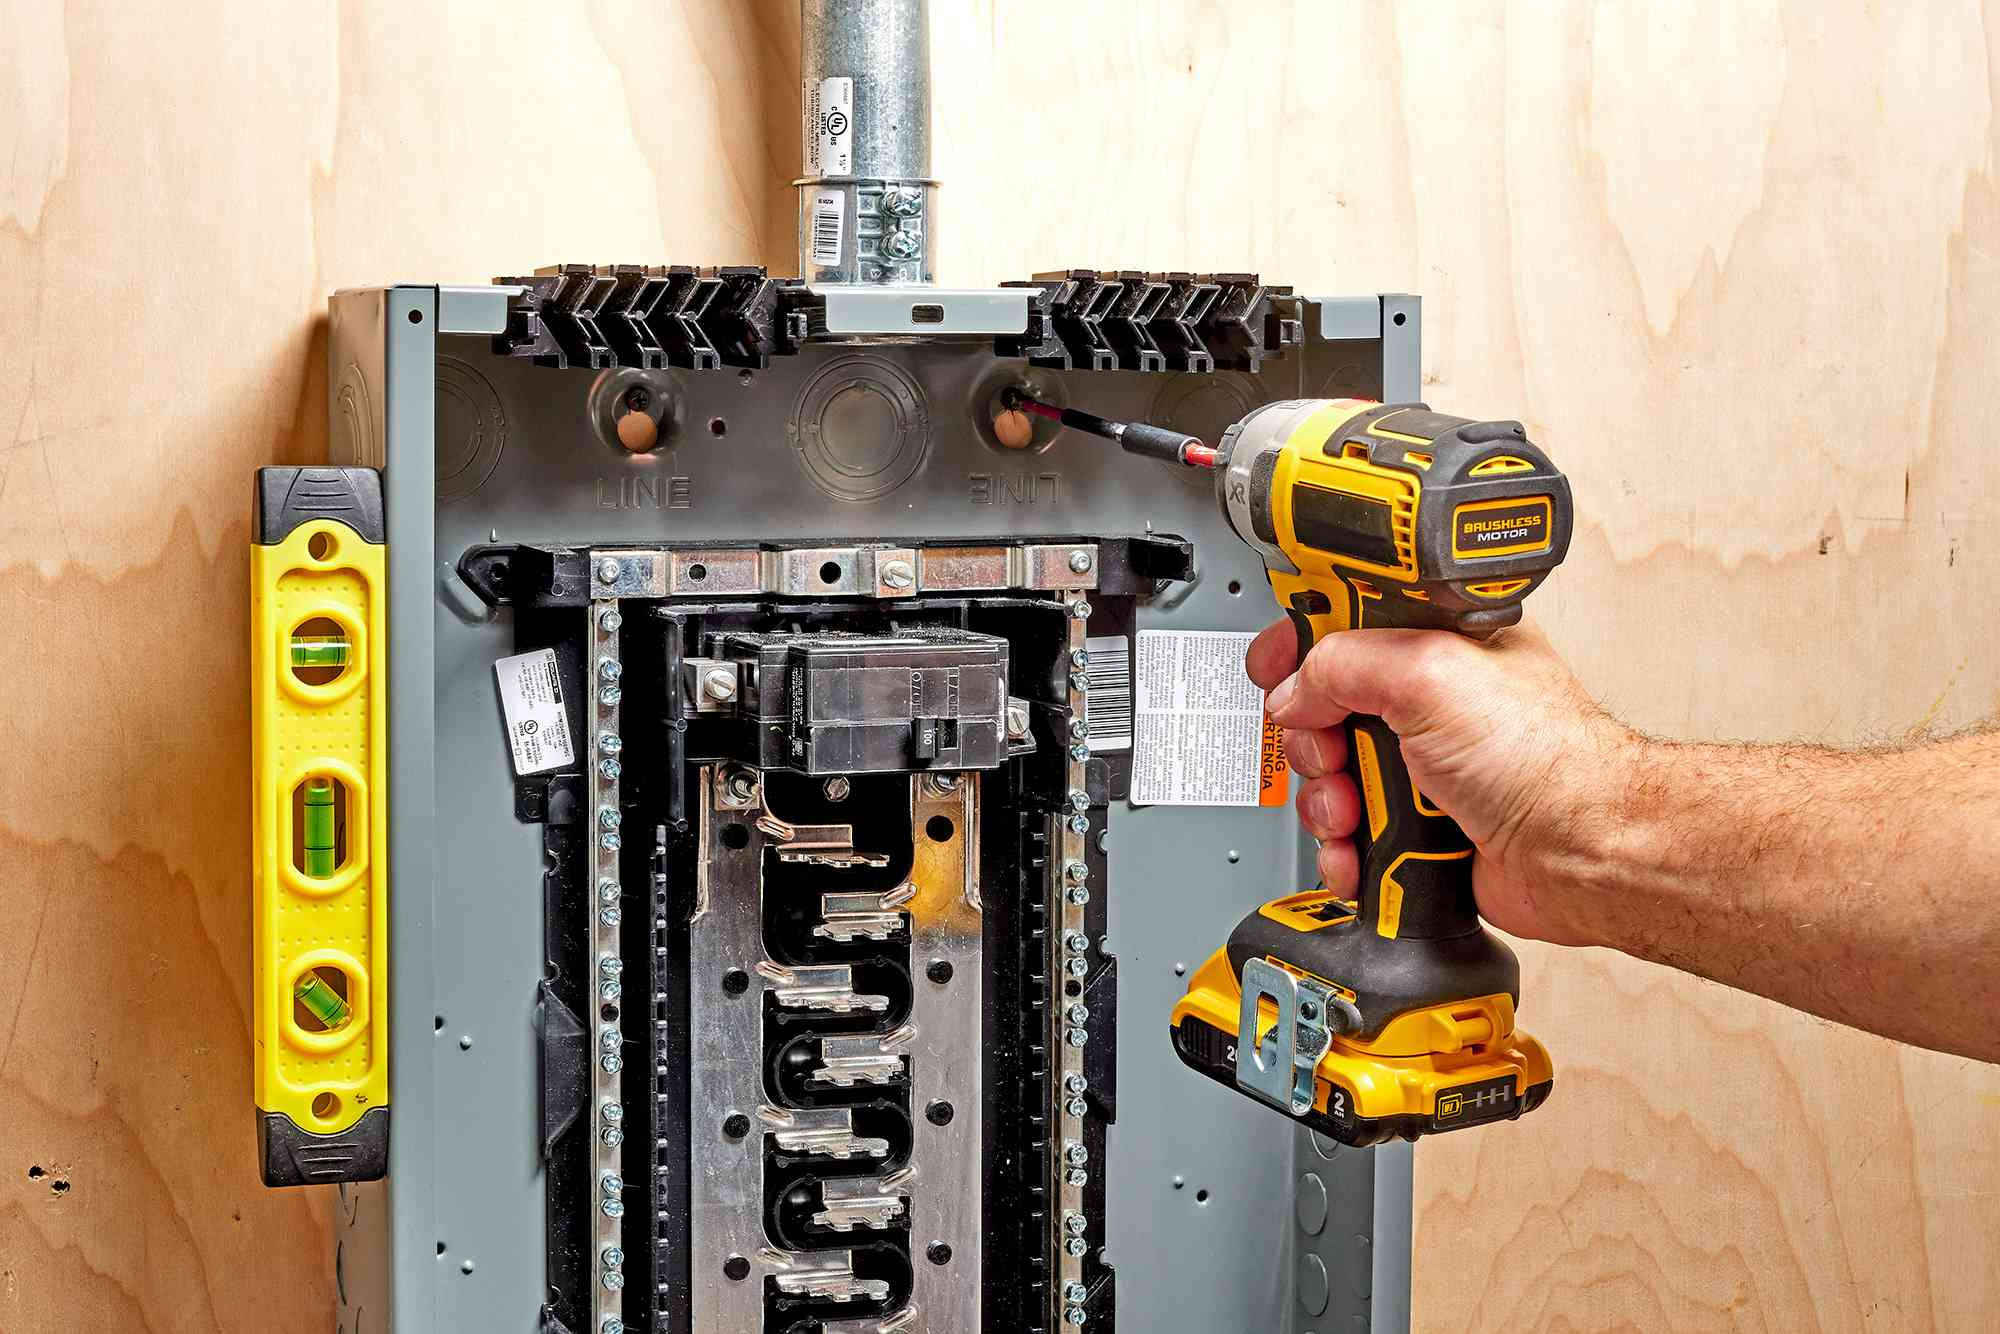 Electric drill drilling extra holes in back of electric panel wall to accommodate installation